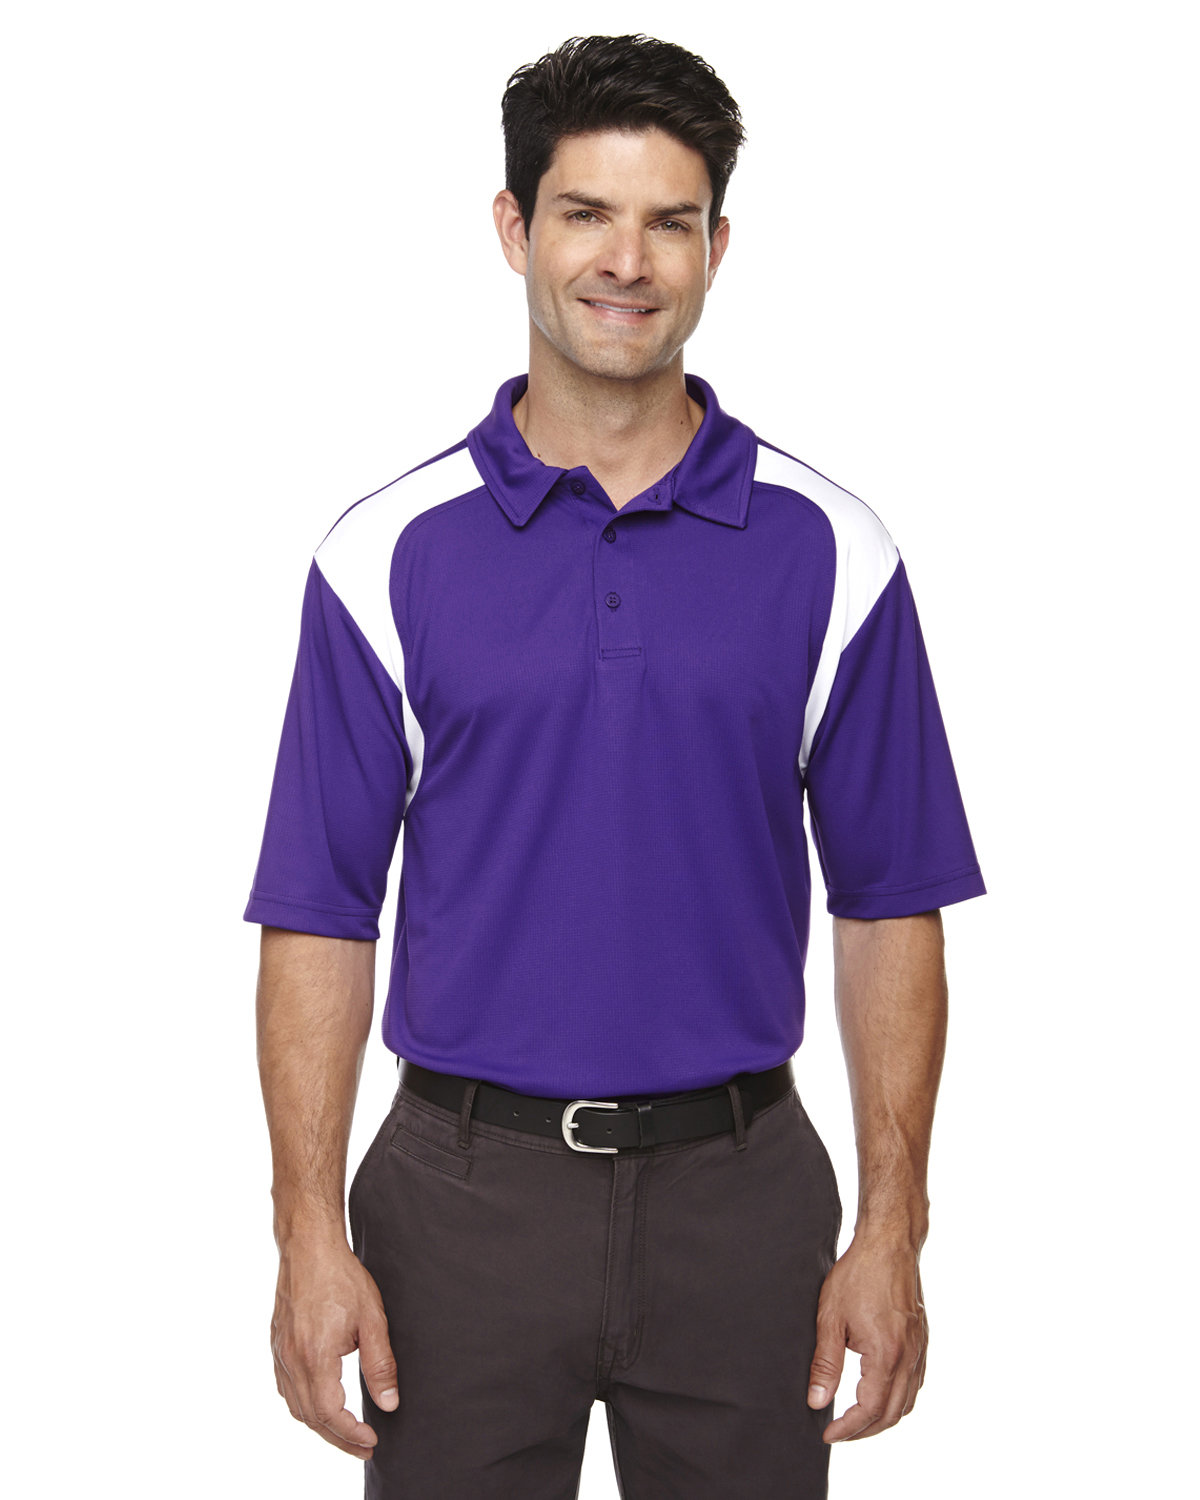 Extreme Men's Eperformance™ Colorblock Textured Polo CAMPUS PURPLE